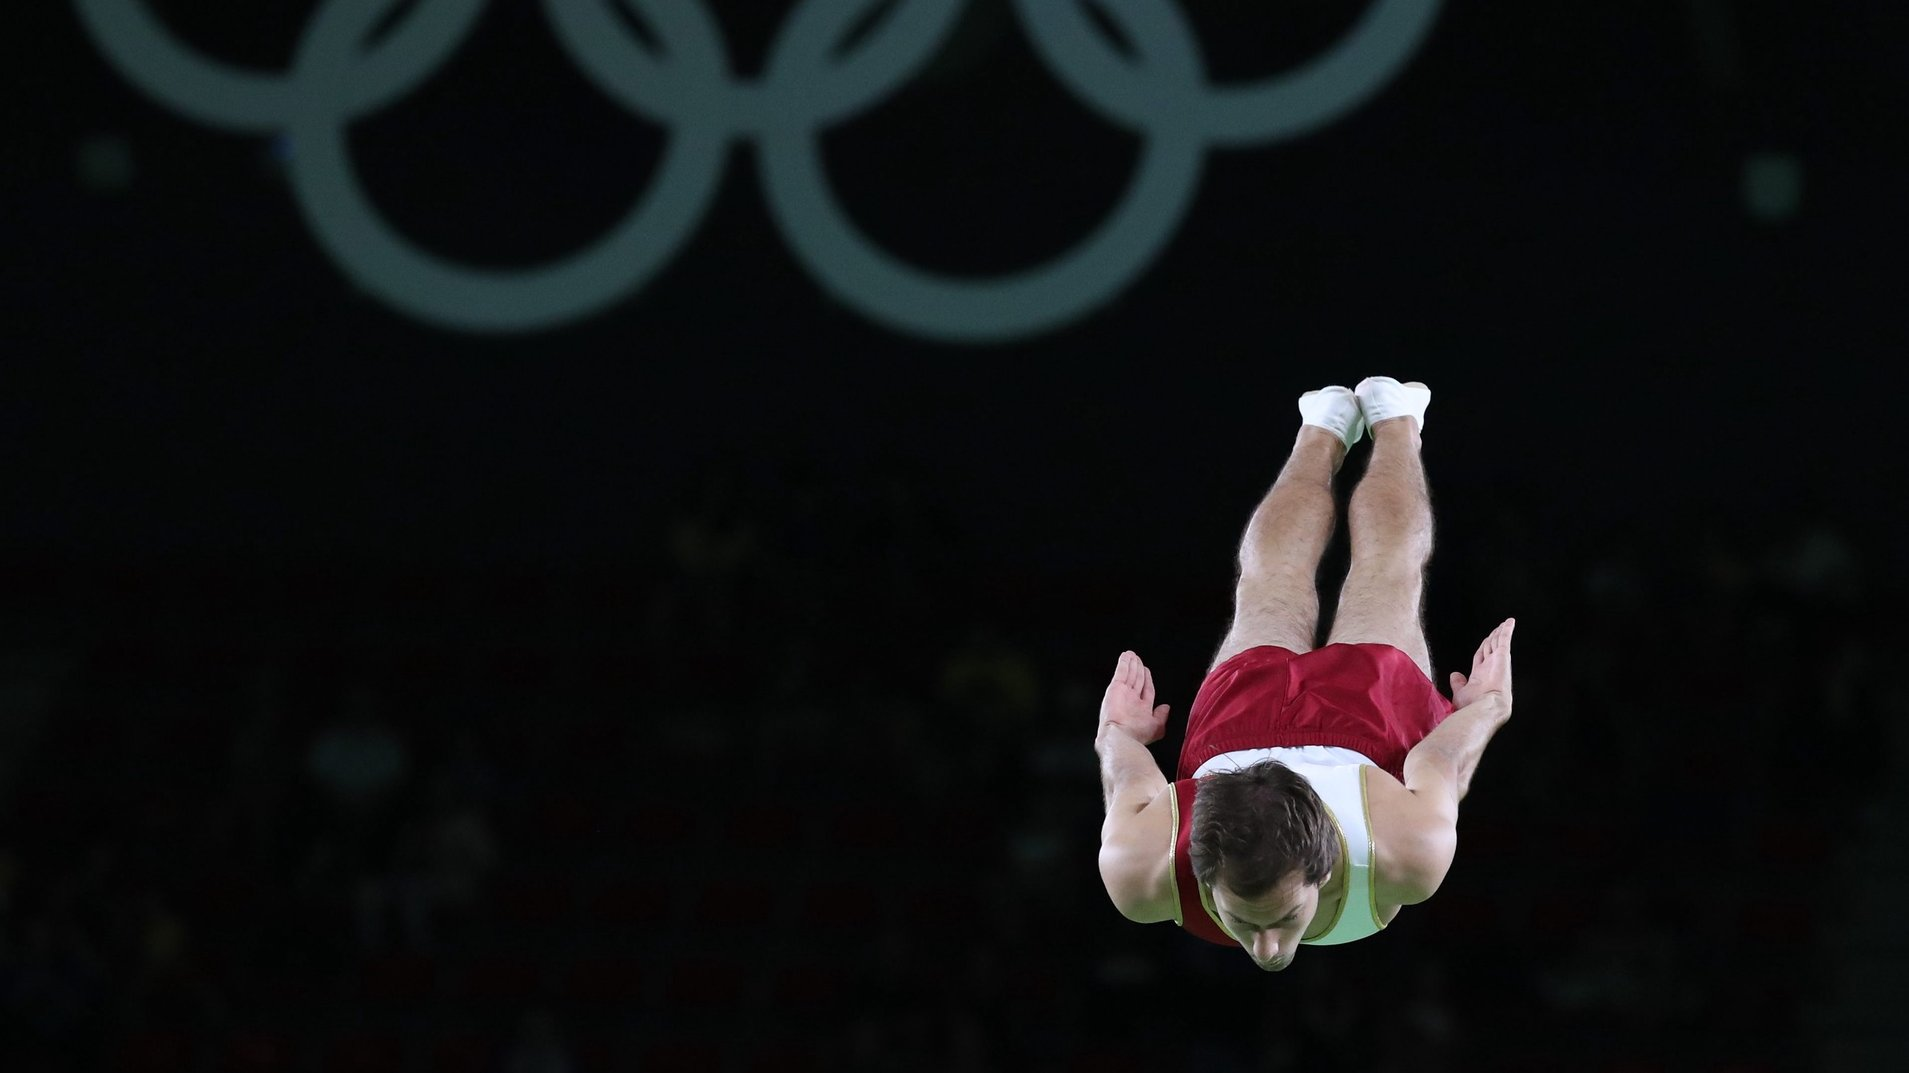 epa05481711 Diogo Abreu of Portugal competing during the Men's Trampoline Qualifications of the Rio 2016 Olympic Games Trampoline Gymnastics events at the Rio Olympic Arena in Barra da Tijuca, Rio de Janeiro, Brazil, 13 August 2016.  EPA/TATYANA ZENKOVICH